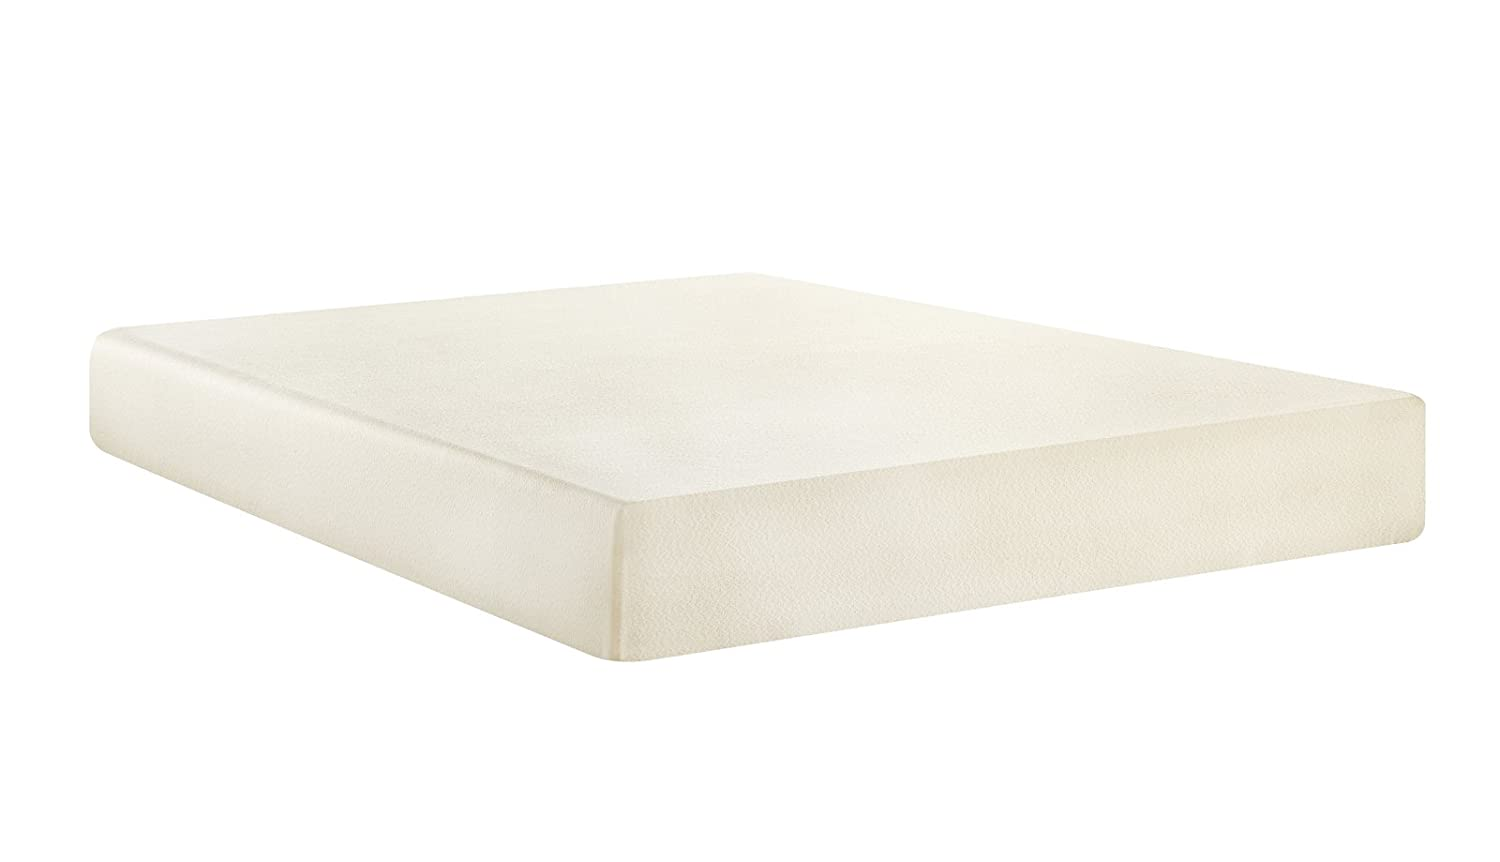 Signature sleep 8 inch memory foam mattress twin new free shipping ebay Double mattress memory foam